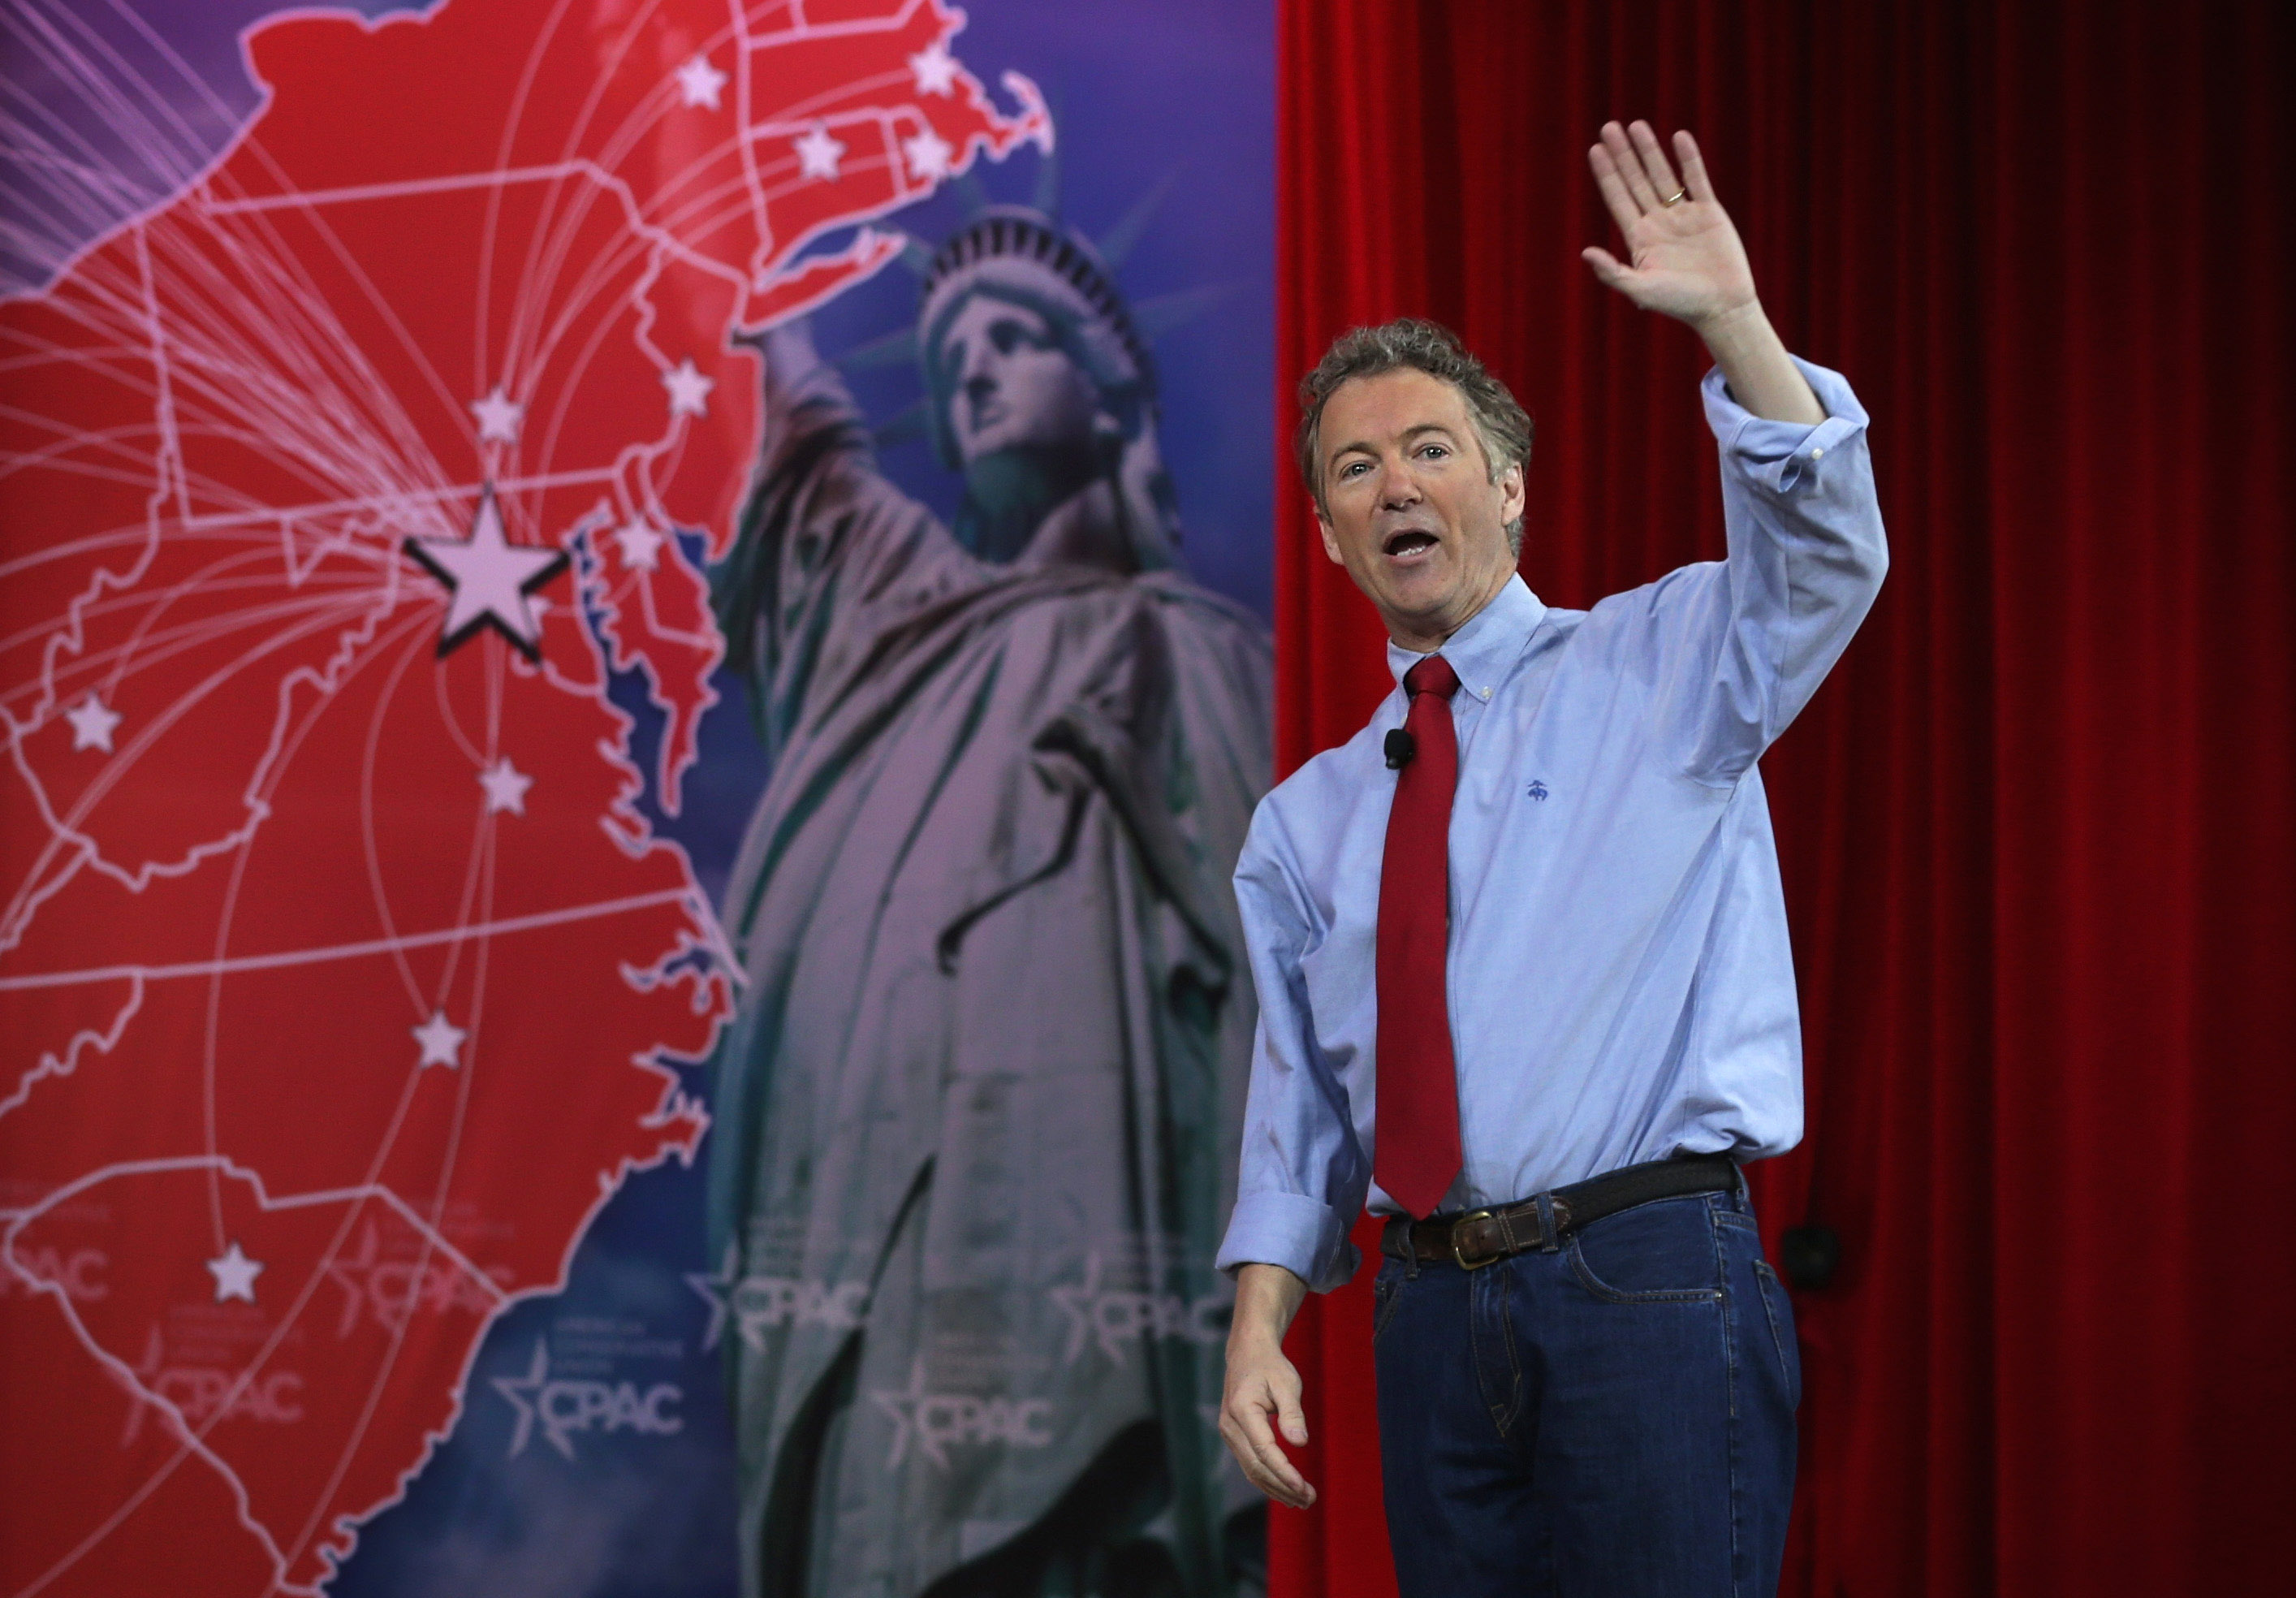 U.S. Sen. Rand Paul (R-KY) waves to the crowd after he addressed the 42nd annual Conservative Political Action Conference (CPAC) February 27, 2015 in National Harbor, Maryland.